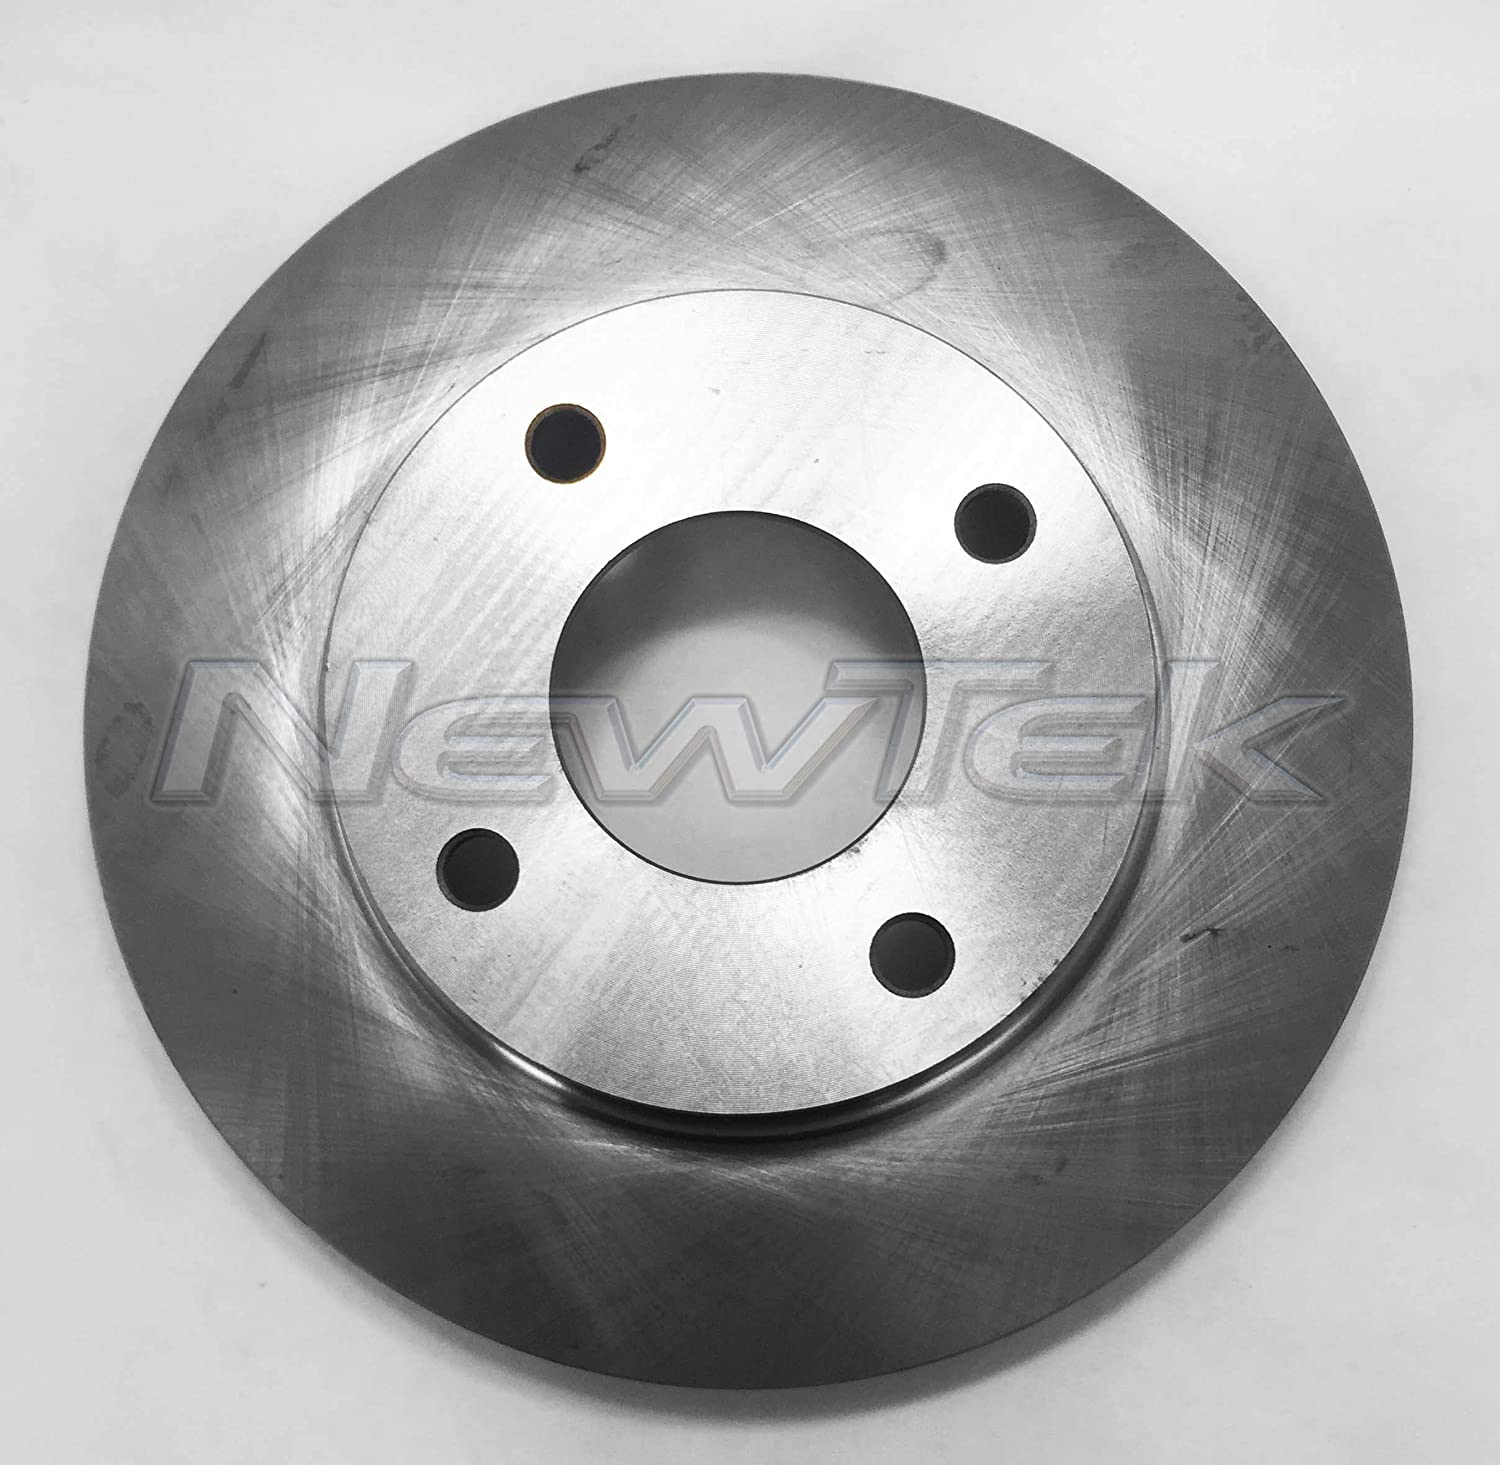 New Disc Brake Rotor Versa for Year-end Detroit Mall annual account